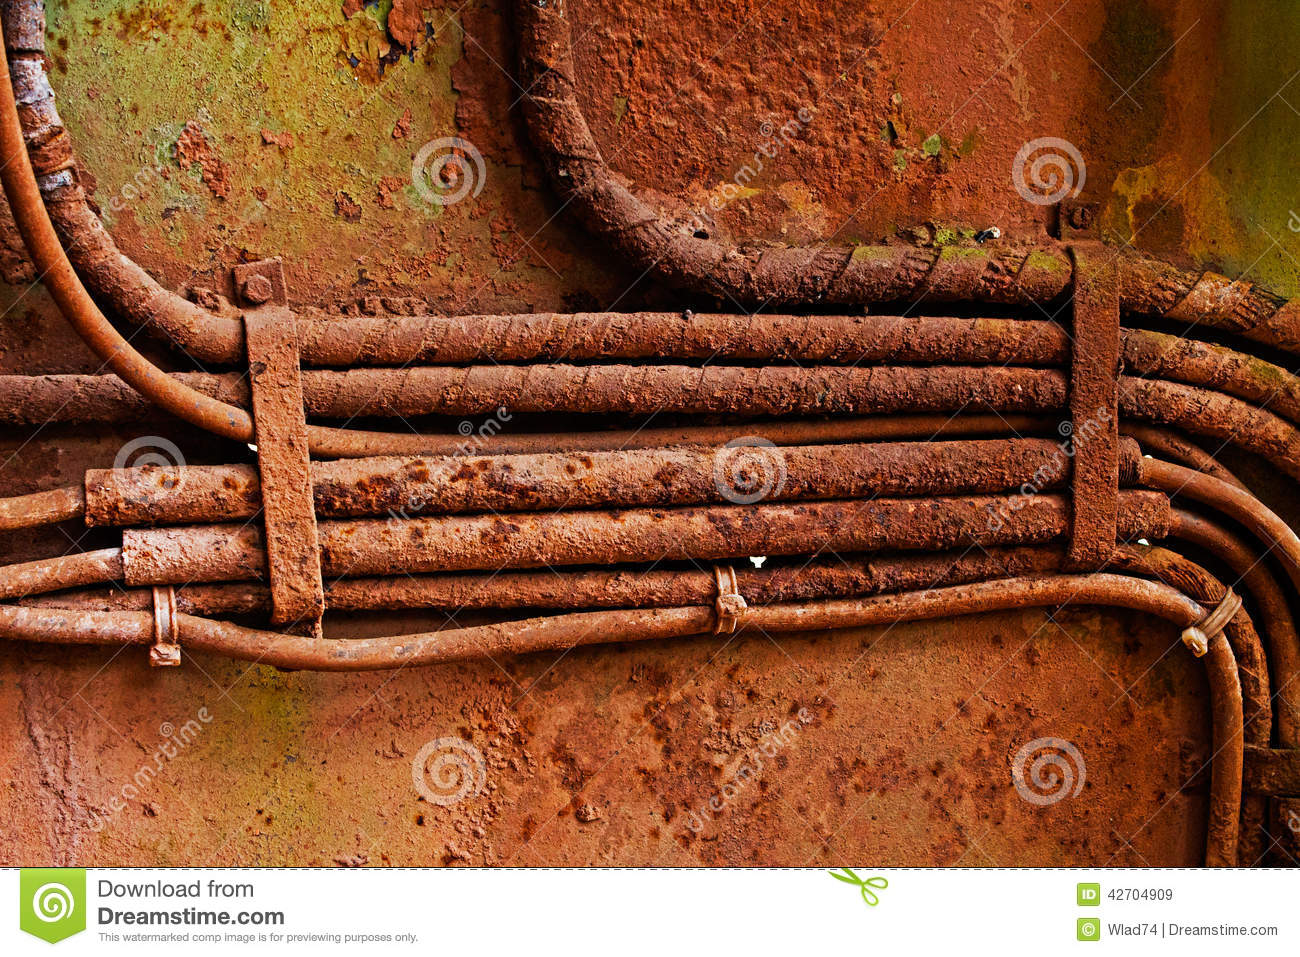 6 9 l wiring old electrical cables on dirty rusty iron wall stock image  old electrical cables on dirty rusty iron wall stock image